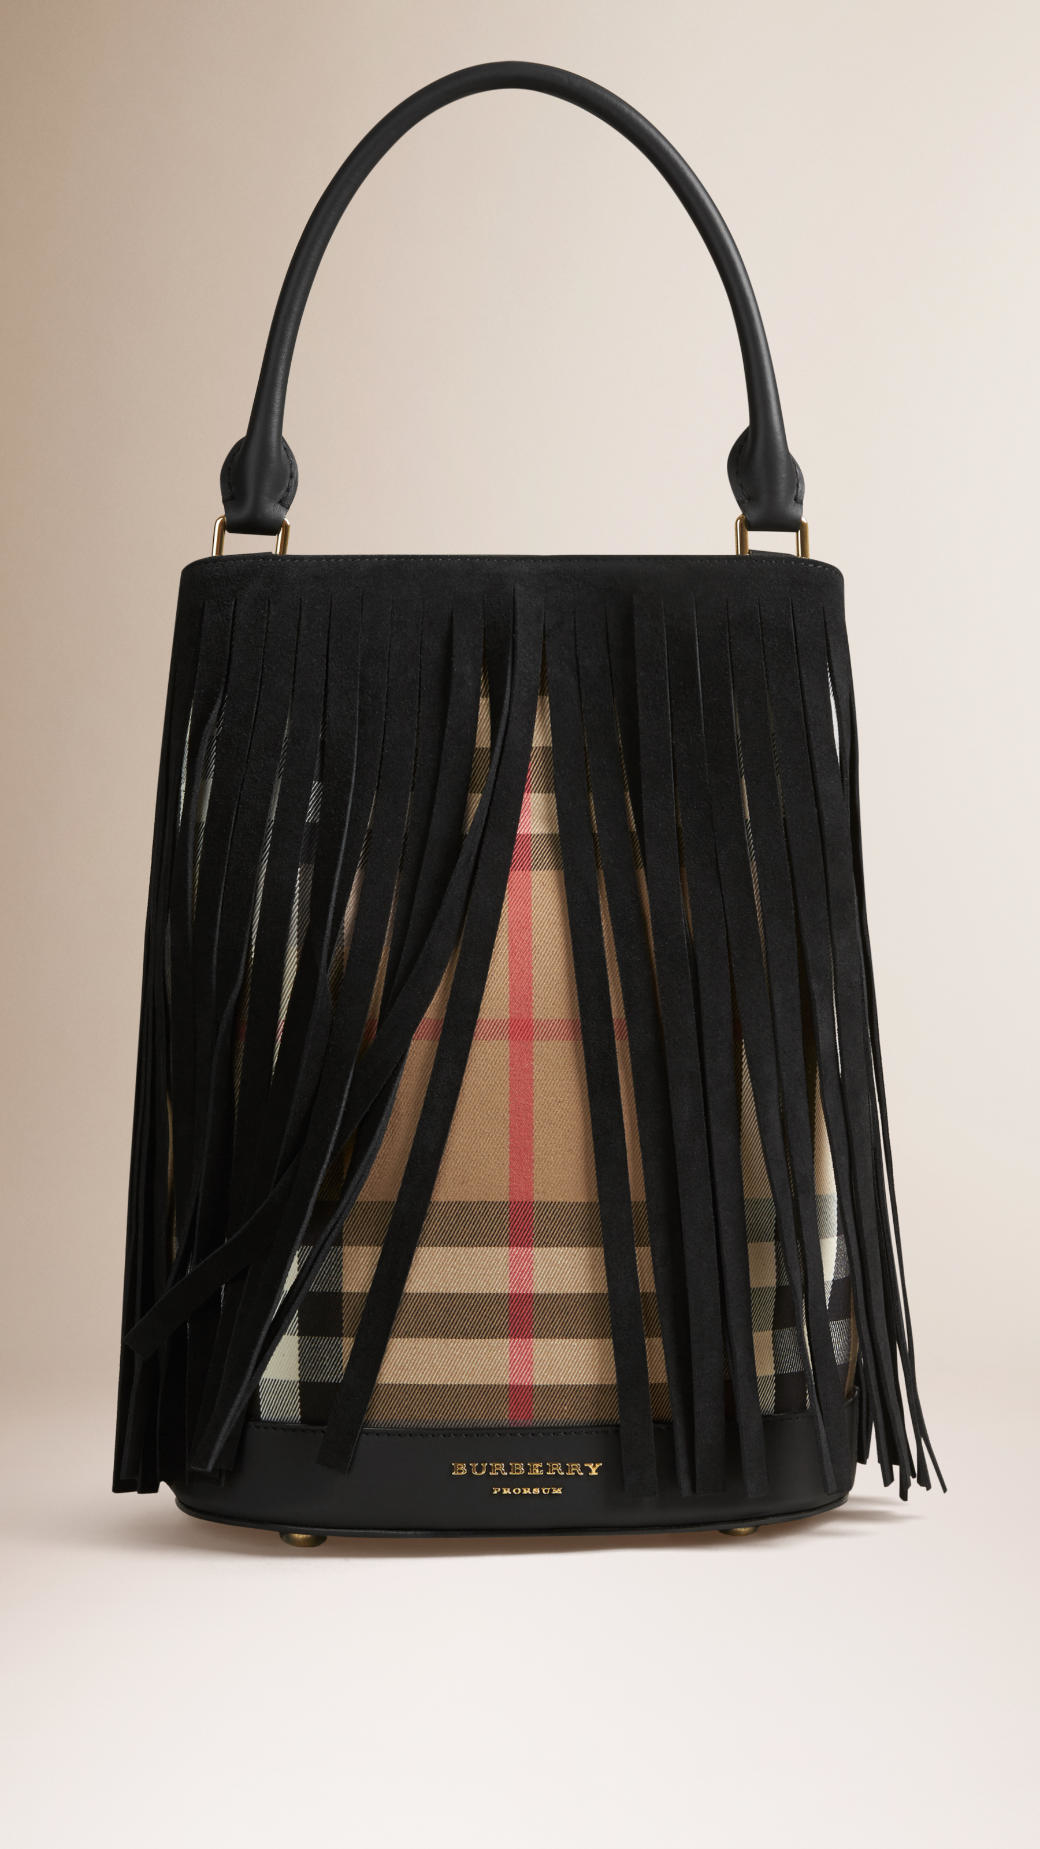 Lyst - Burberry House-Check and Fringed Bucket Bag in Black